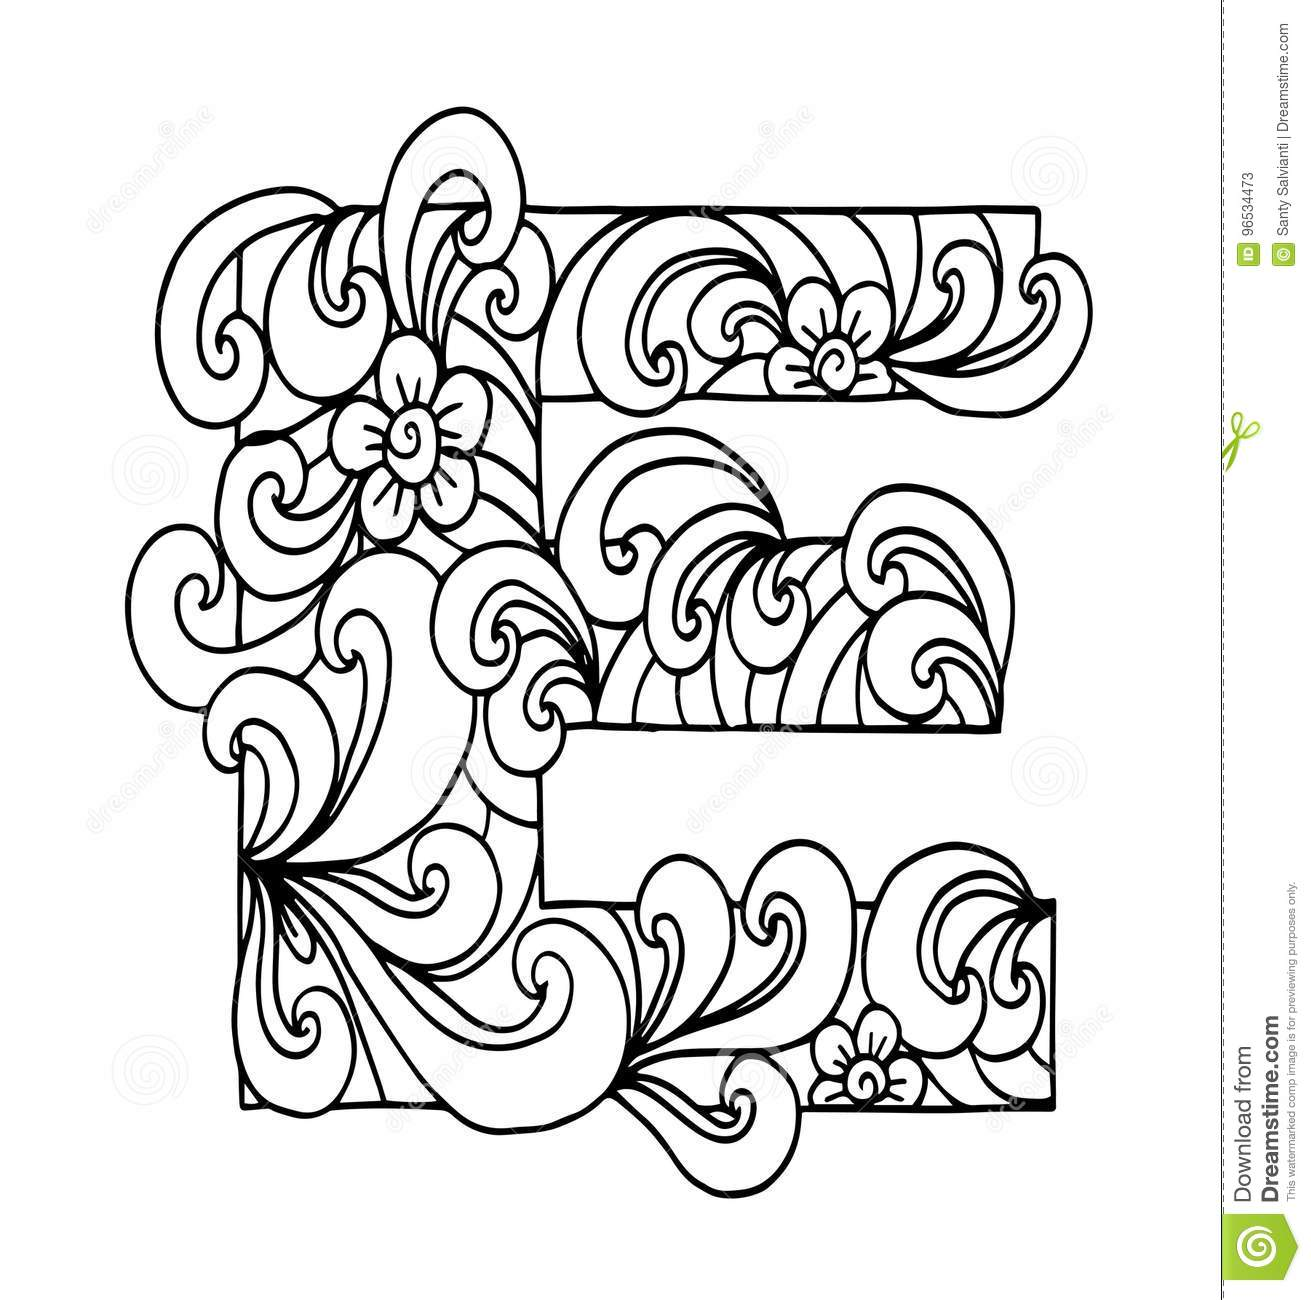 Zentangle Stylized Alphabet Letter E In Doodle Style Hand Drawn